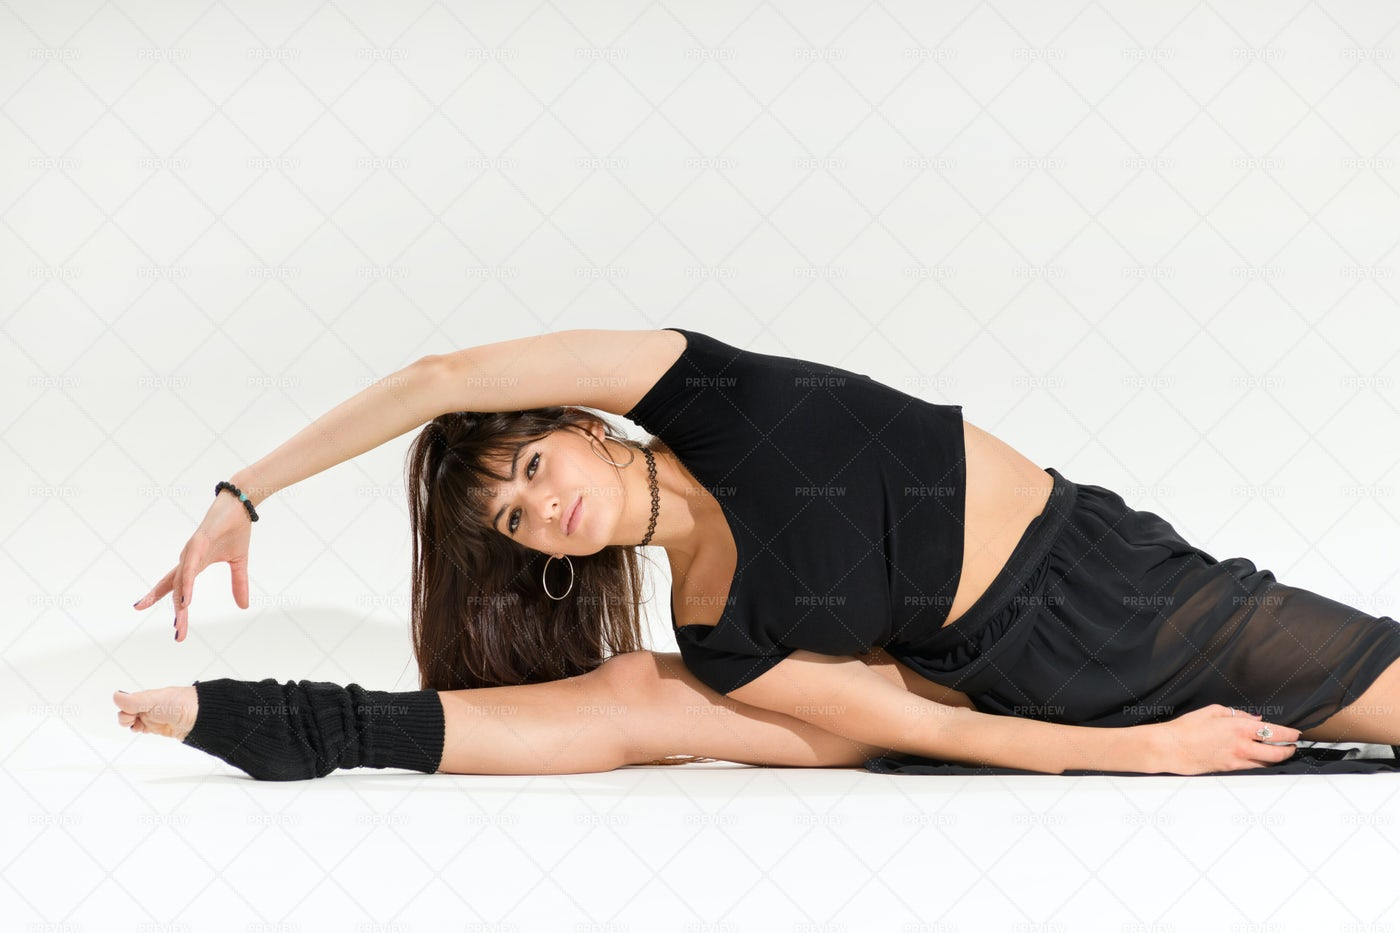 Young Dancer Doing A Middle Split: Stock Photos